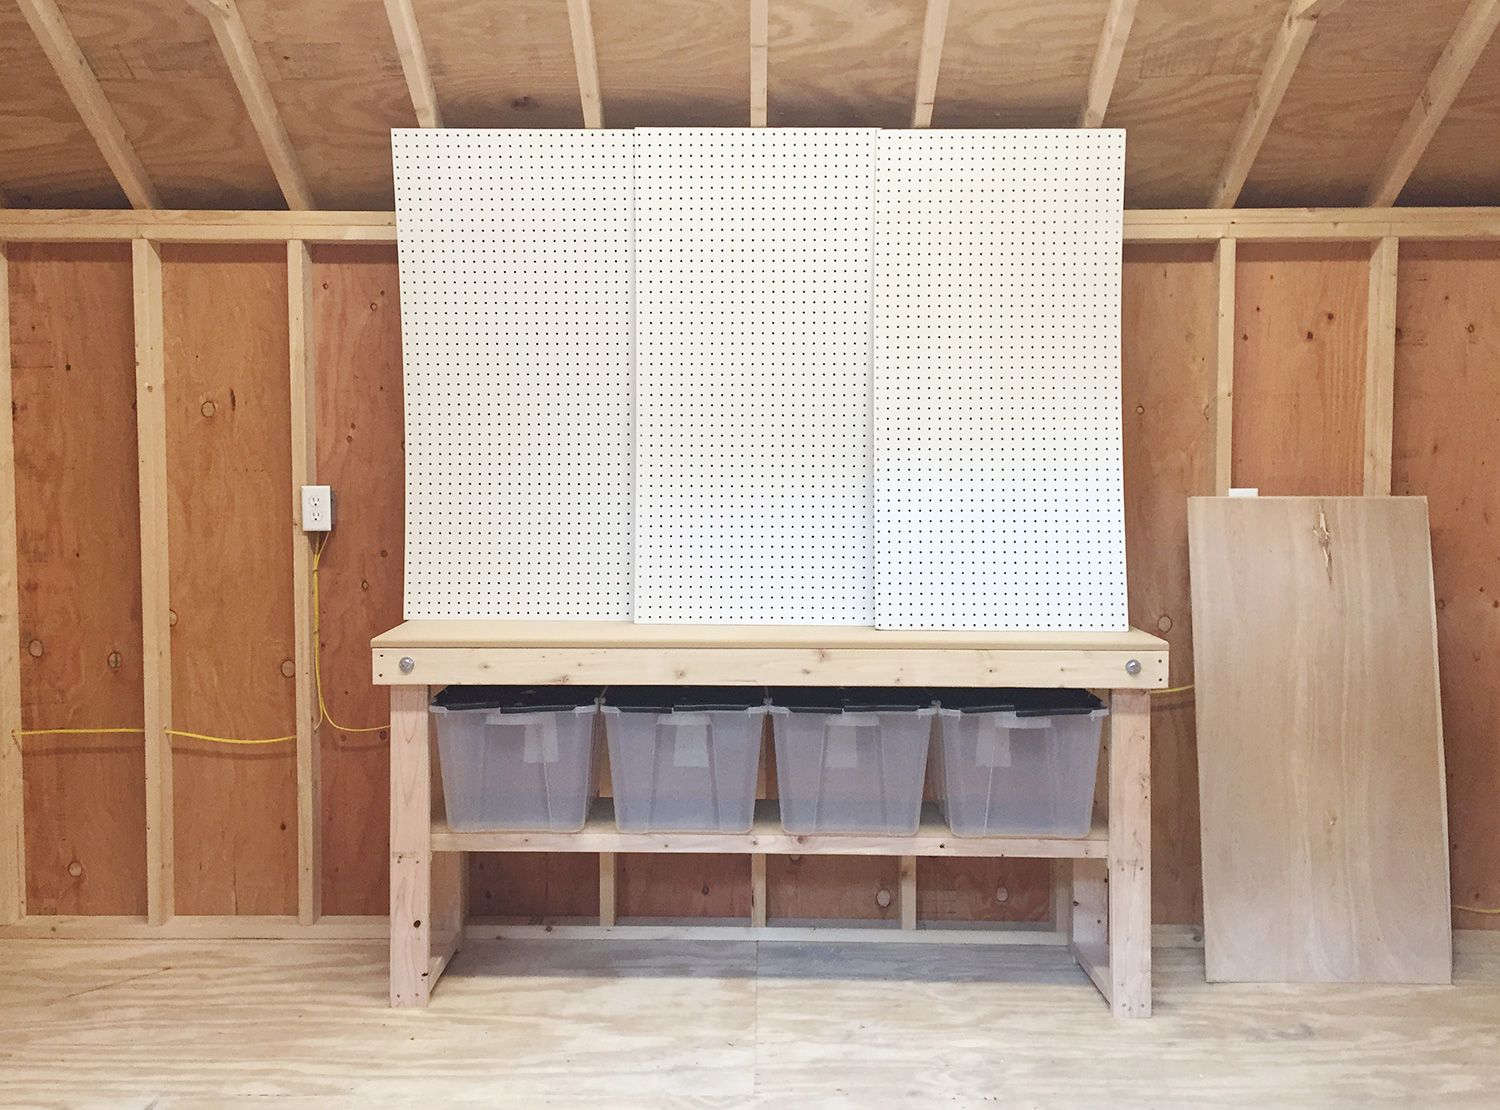 4 Shed Storage Ideas For Tons Of Added Function | Pinterest ...